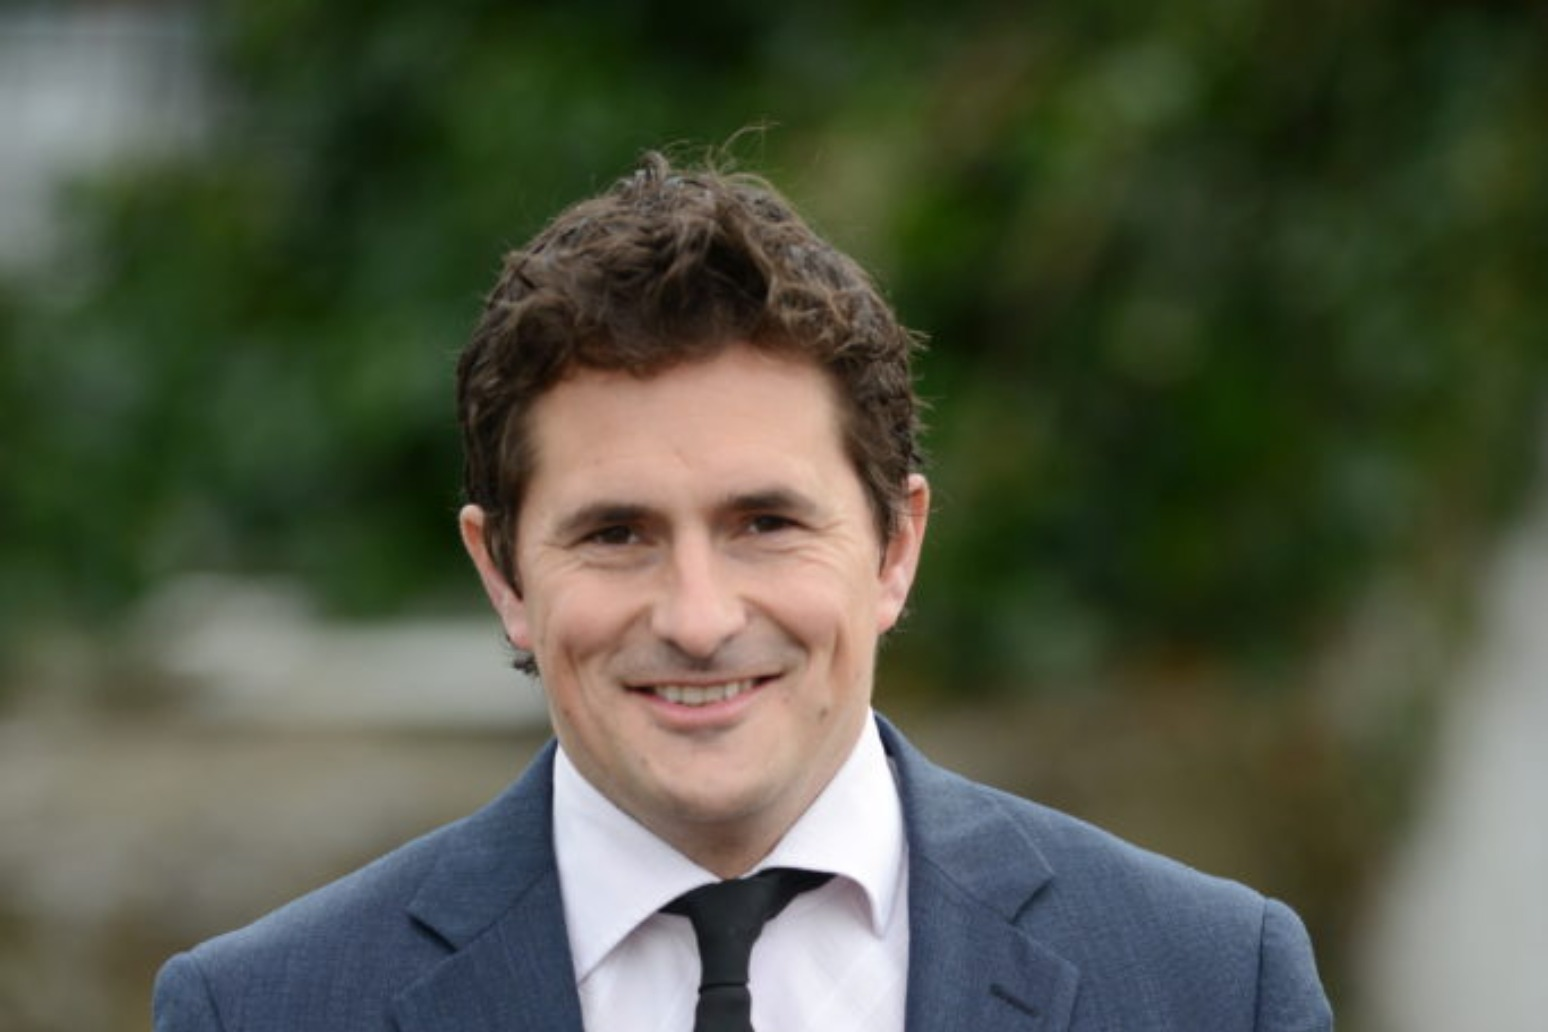 Tory MP who served in Afghanistan condemns 'shameful' exit